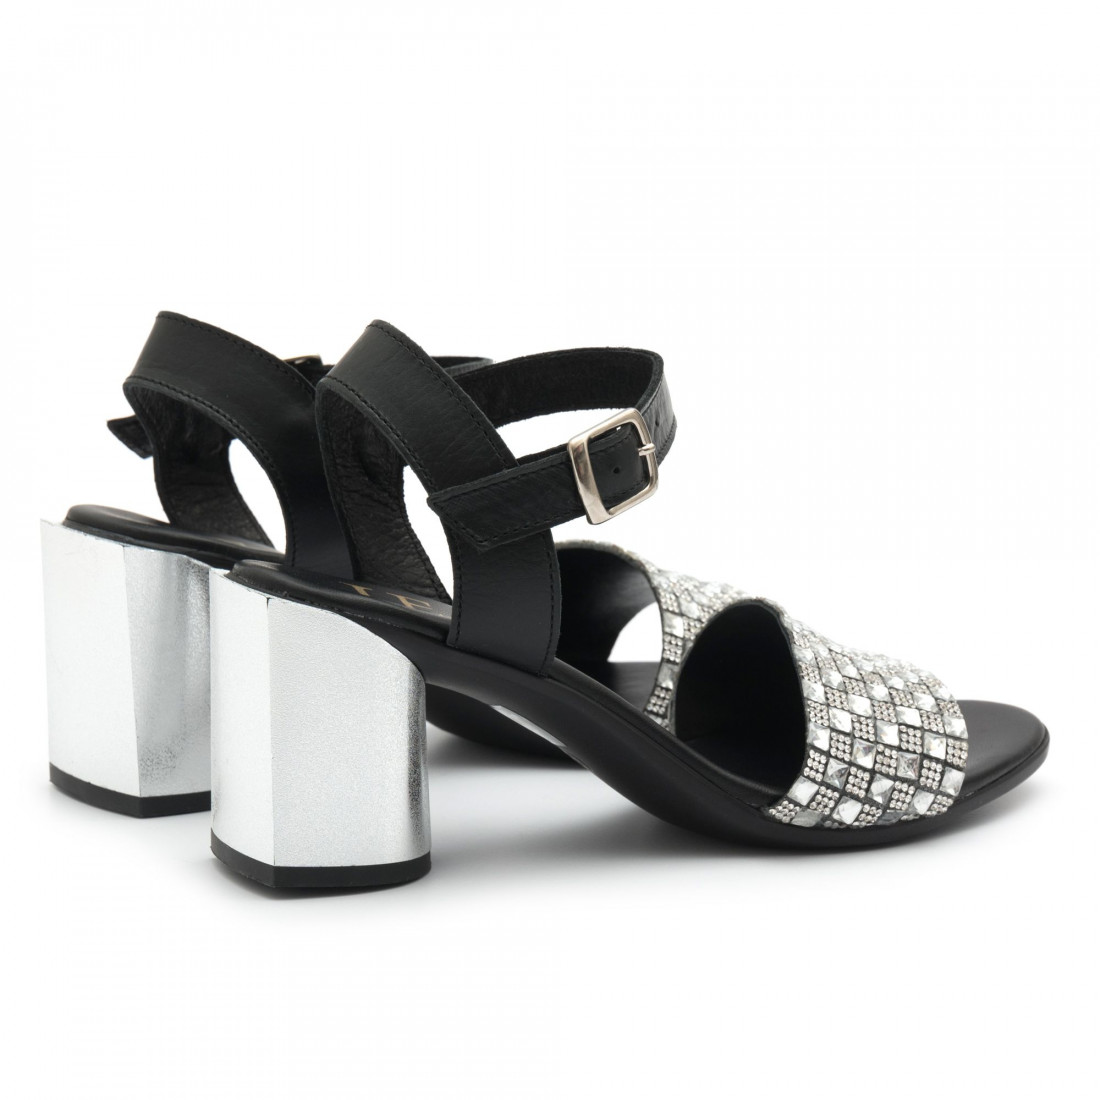 sandals woman jemi 405pelle nero arg 4689